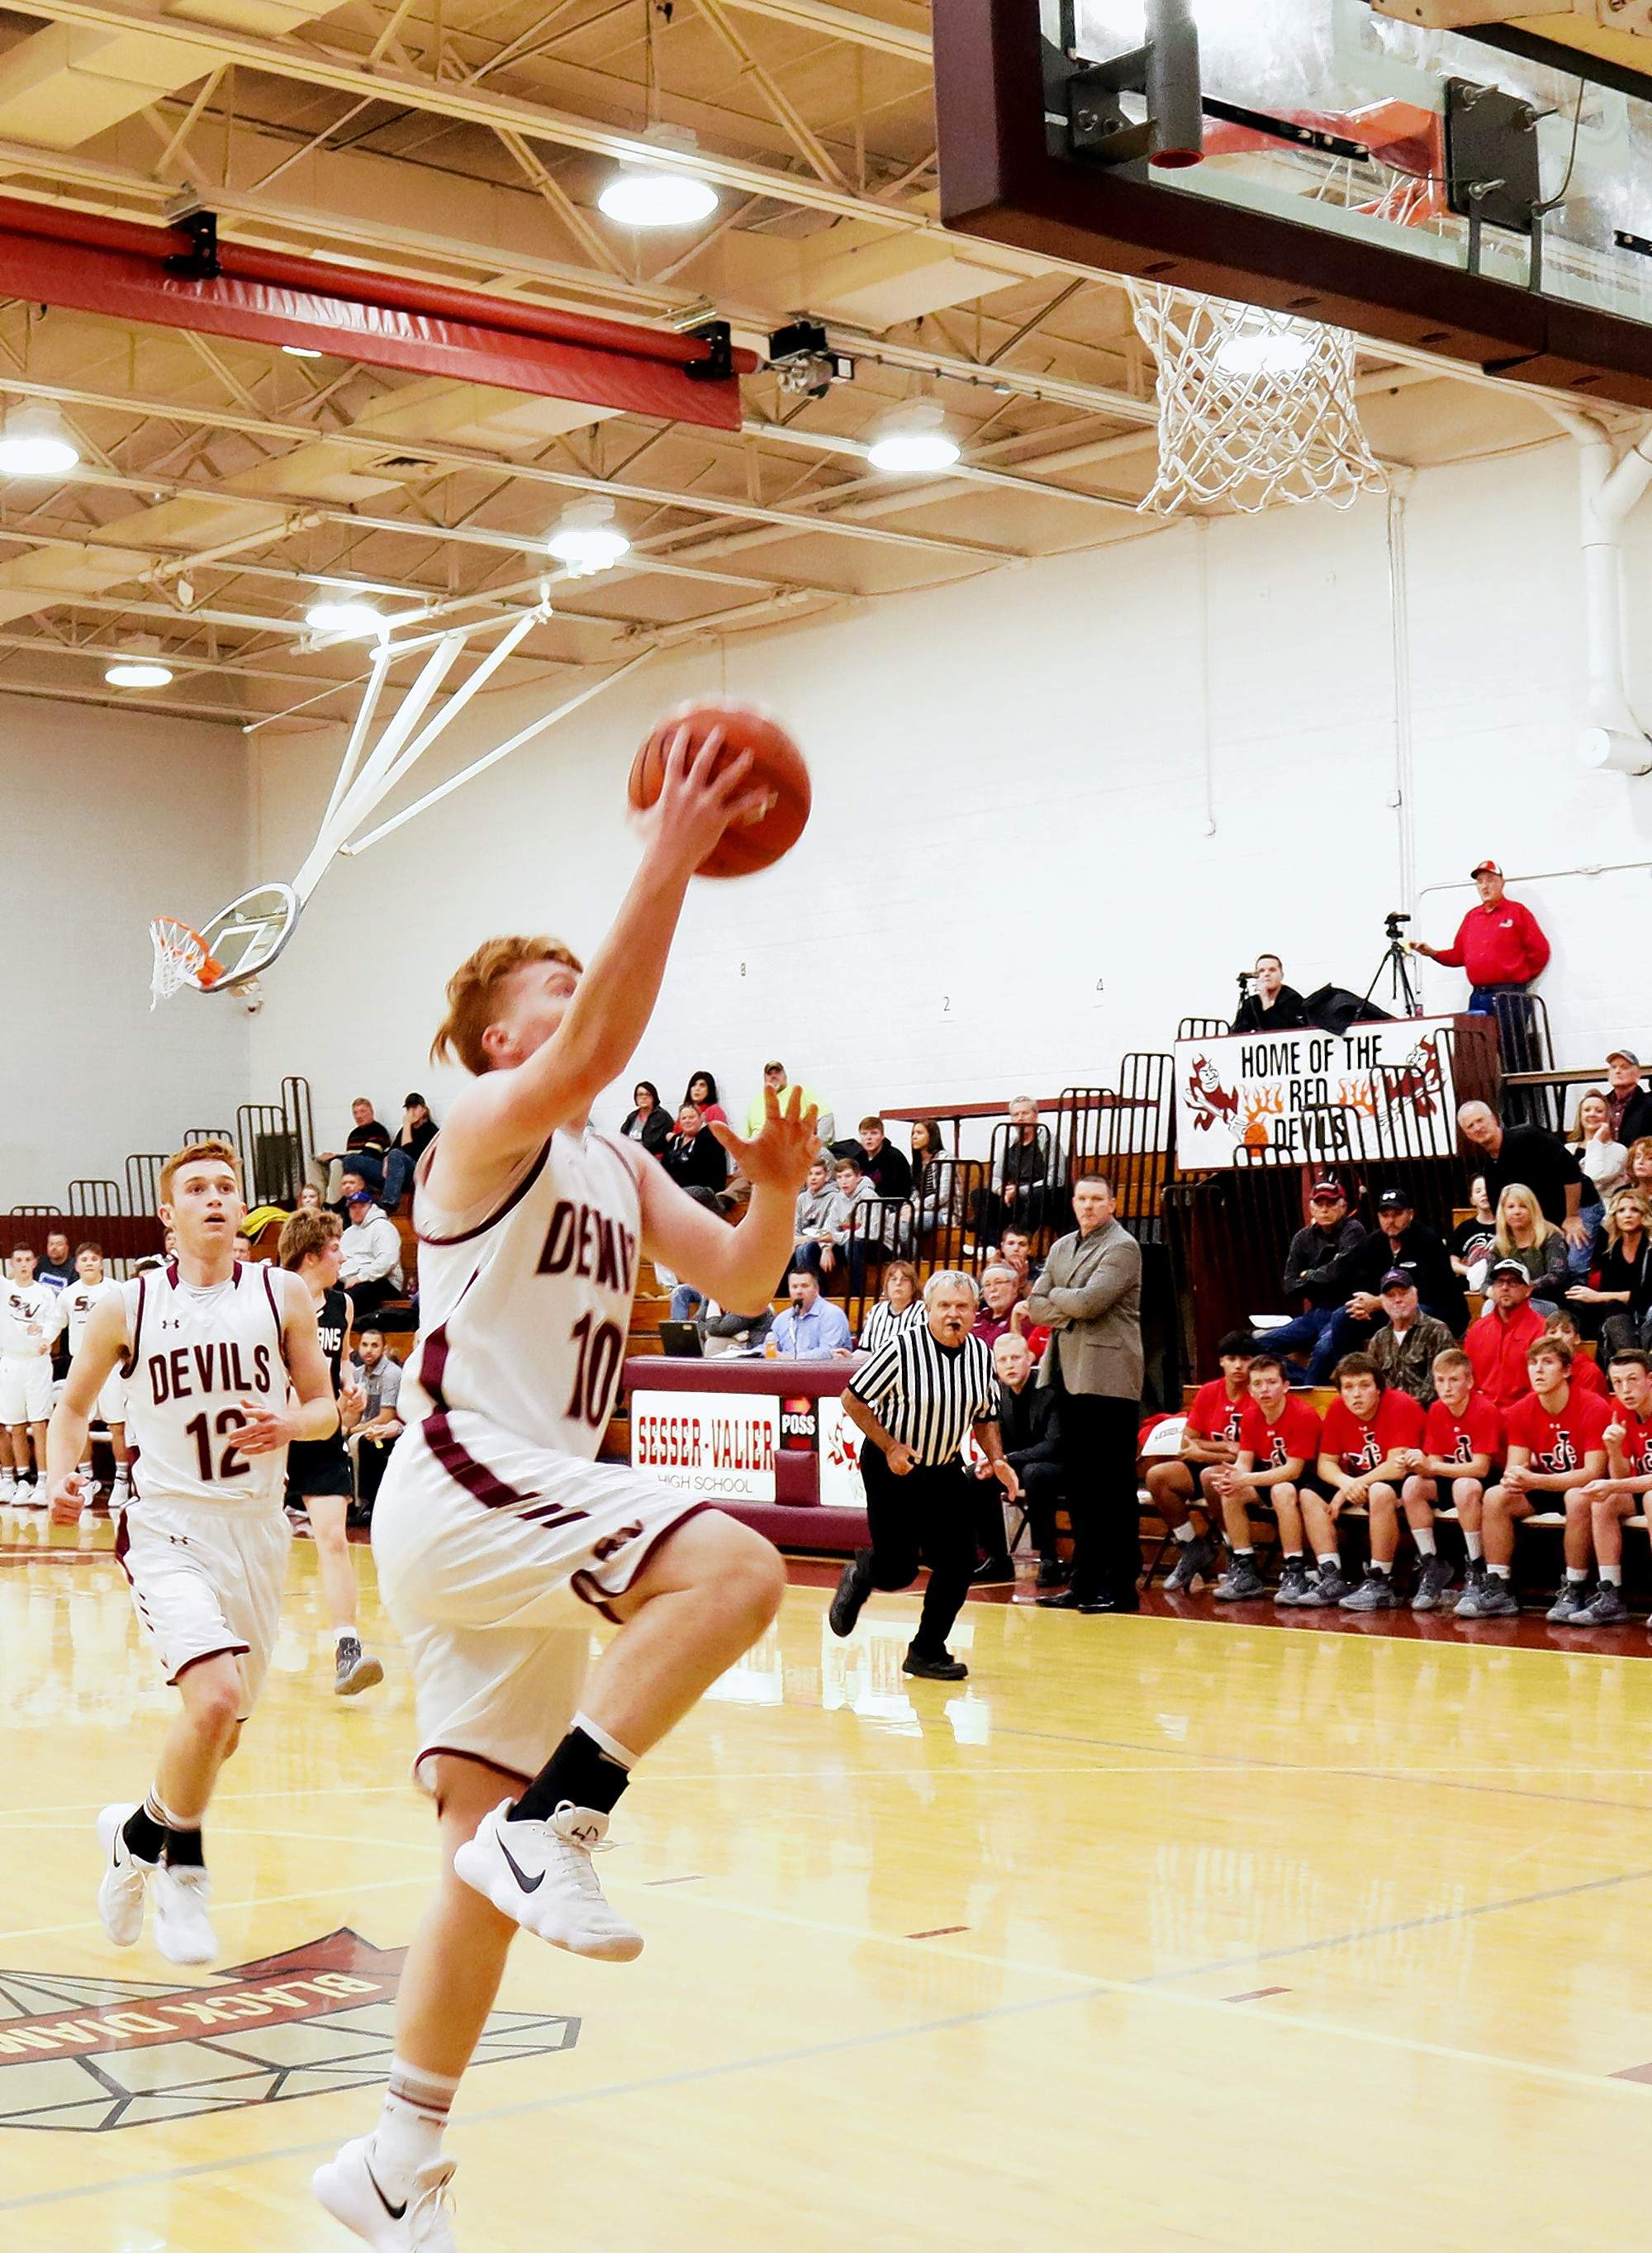 Sesser-Valier's Lukas Gunter puts the ball up on a fast break against Johnston City last Tuesday at home.